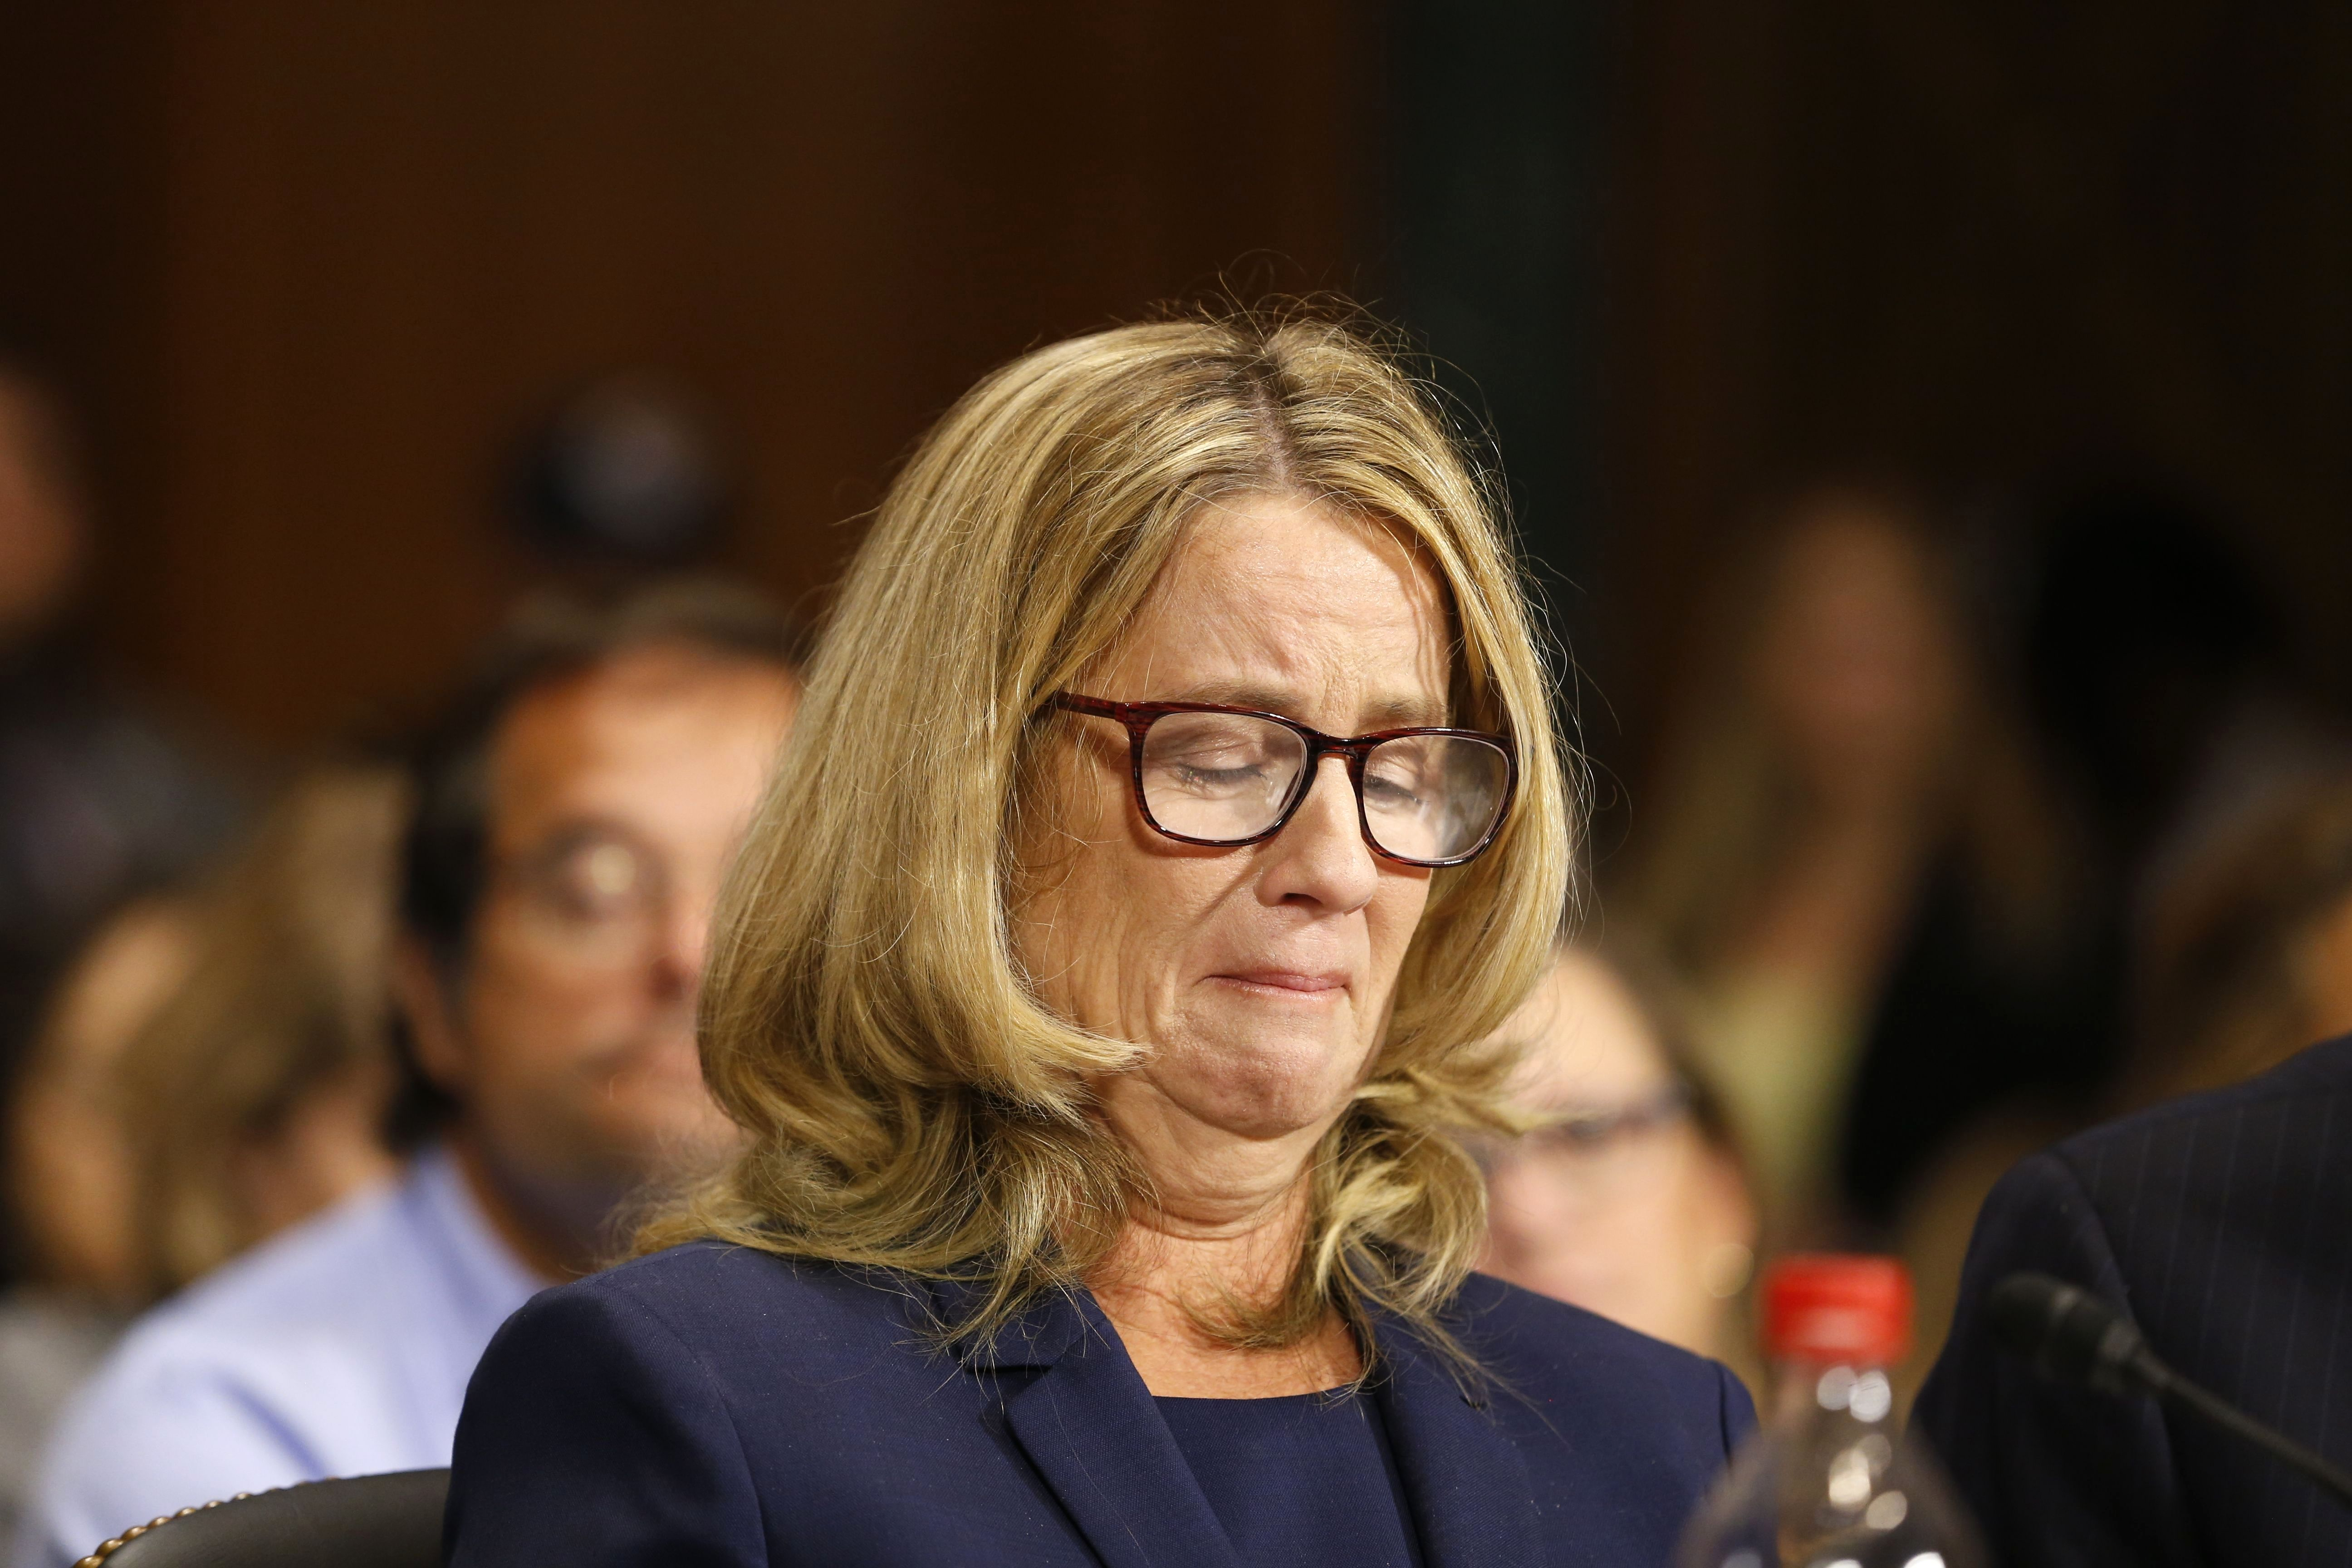 Dr. Christine Blasey Ford speaks before the Senate Judiciary Committee hearing on the nomination of Brett Kavanaugh to be an associate justice of the Supreme Court in Washington DC on Sept. 27, 2018.